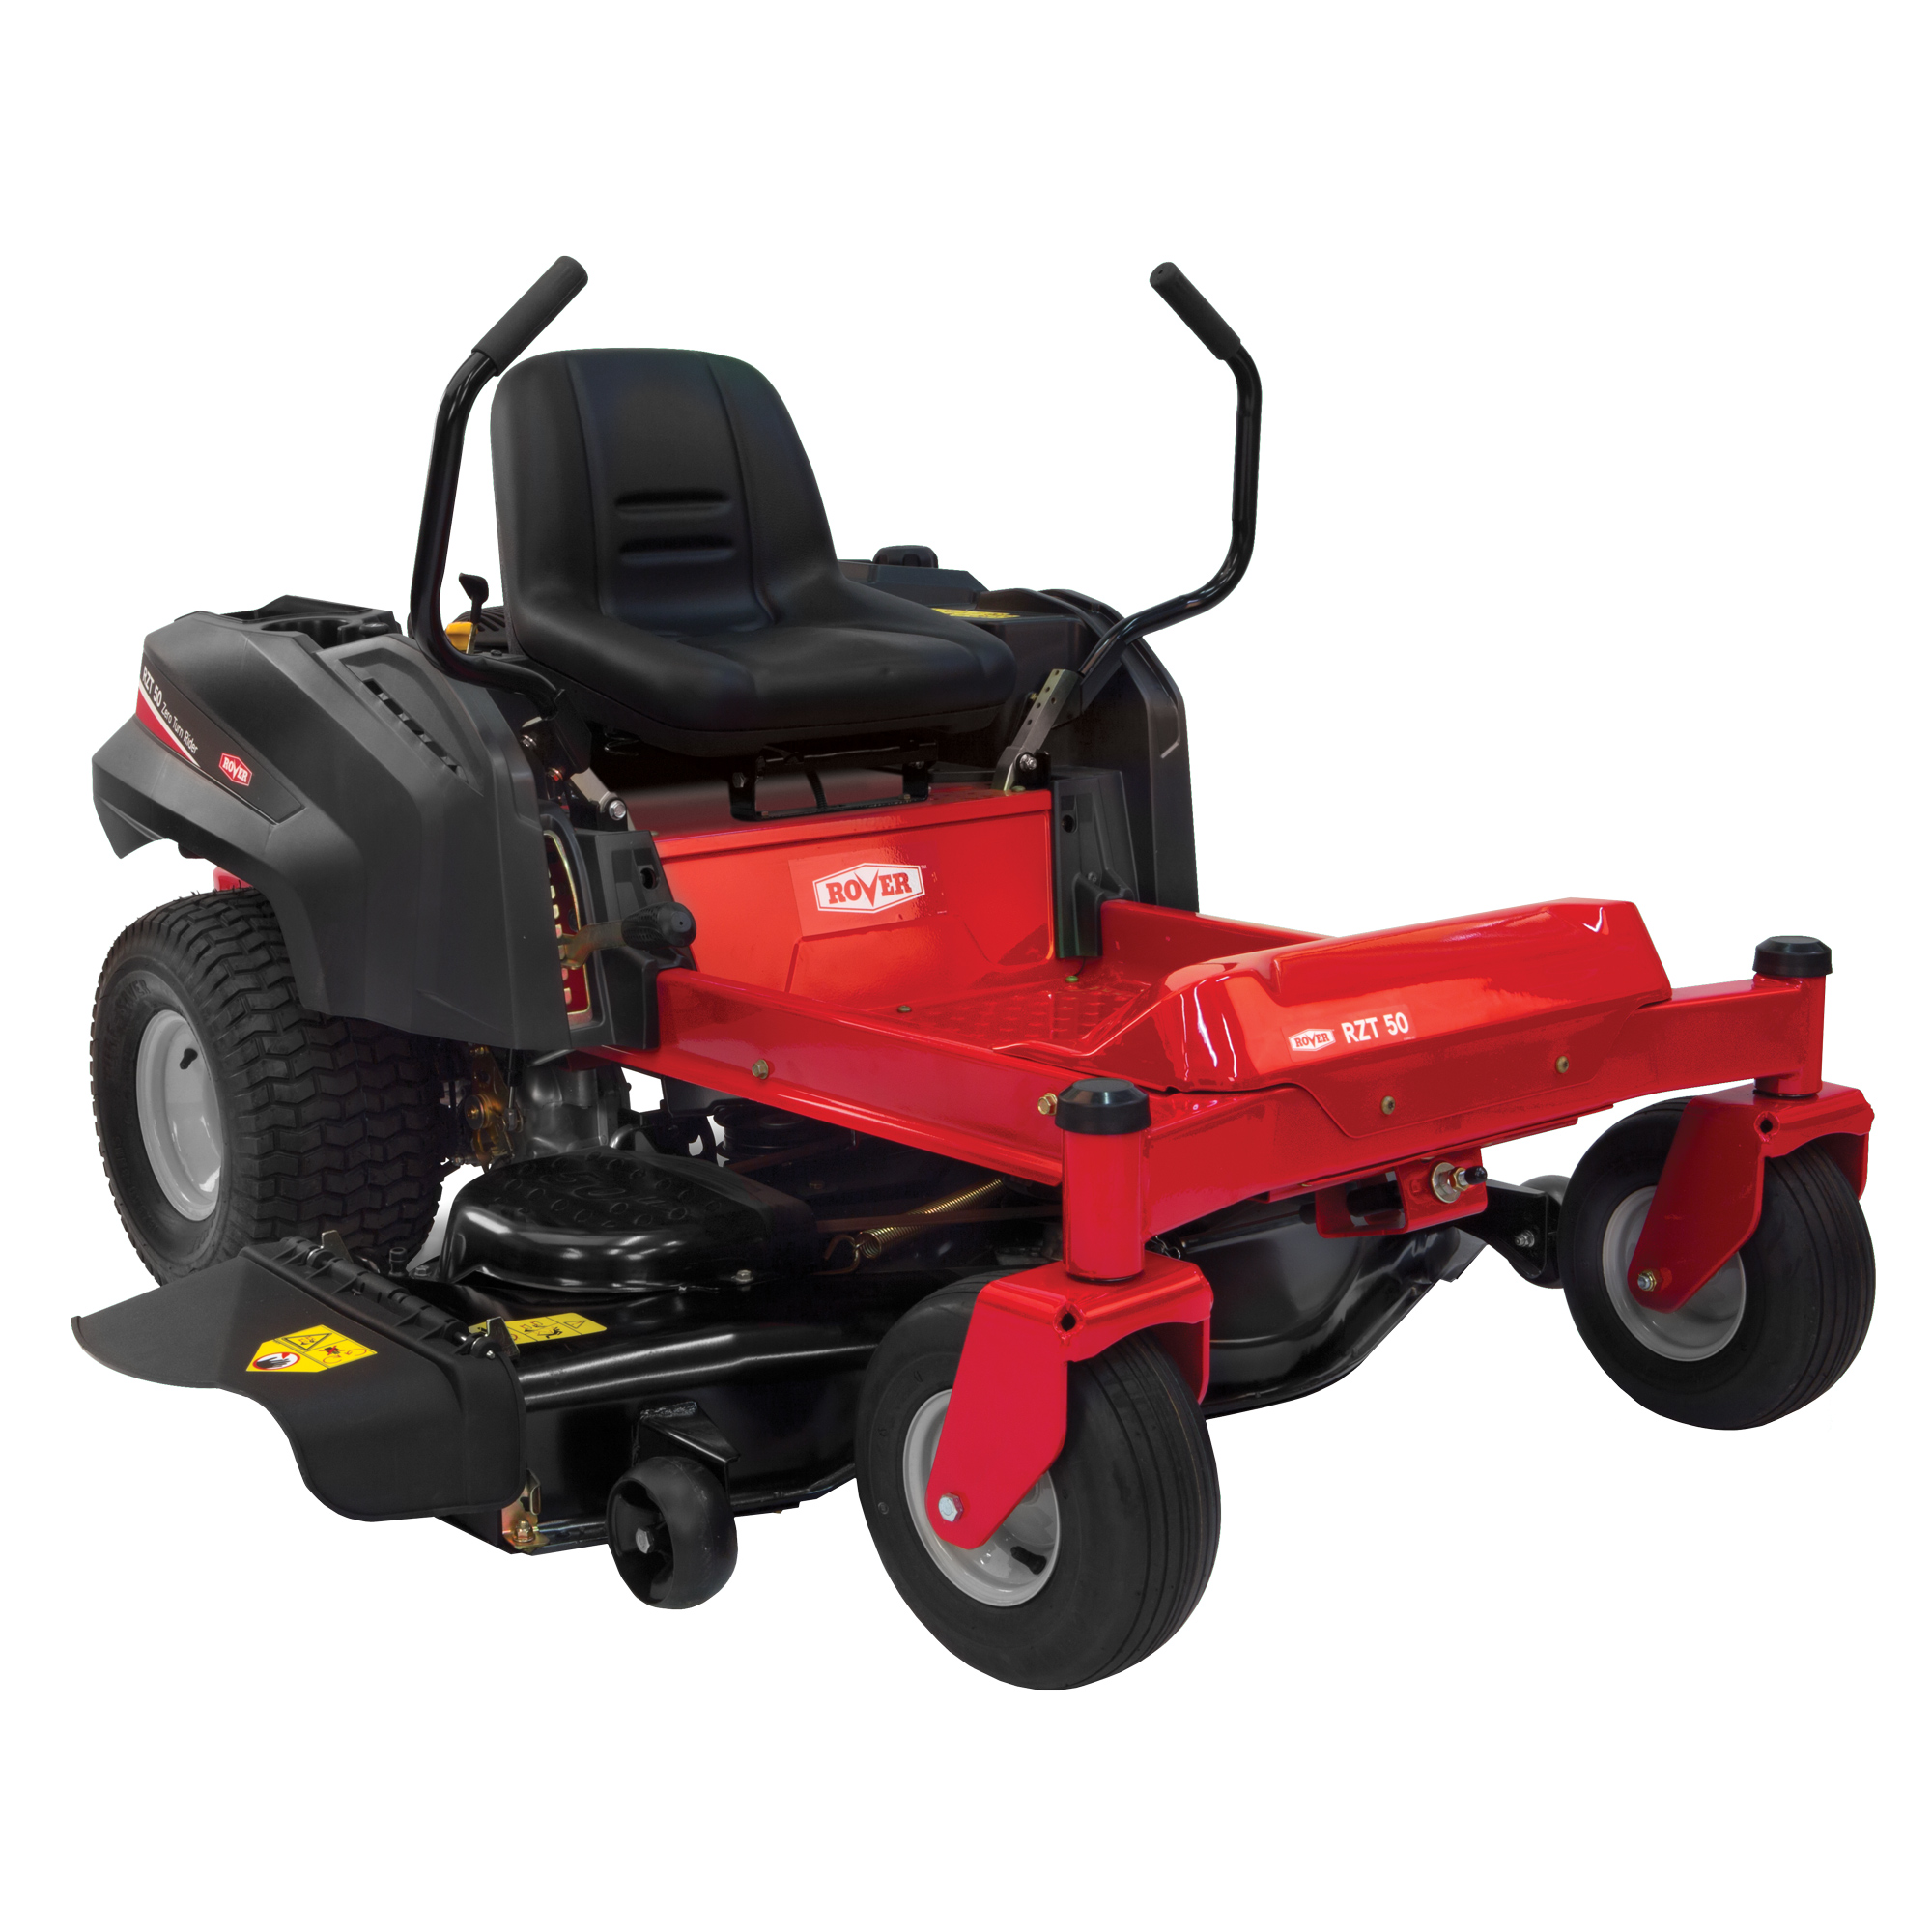 ROVER Zero Turn Mower